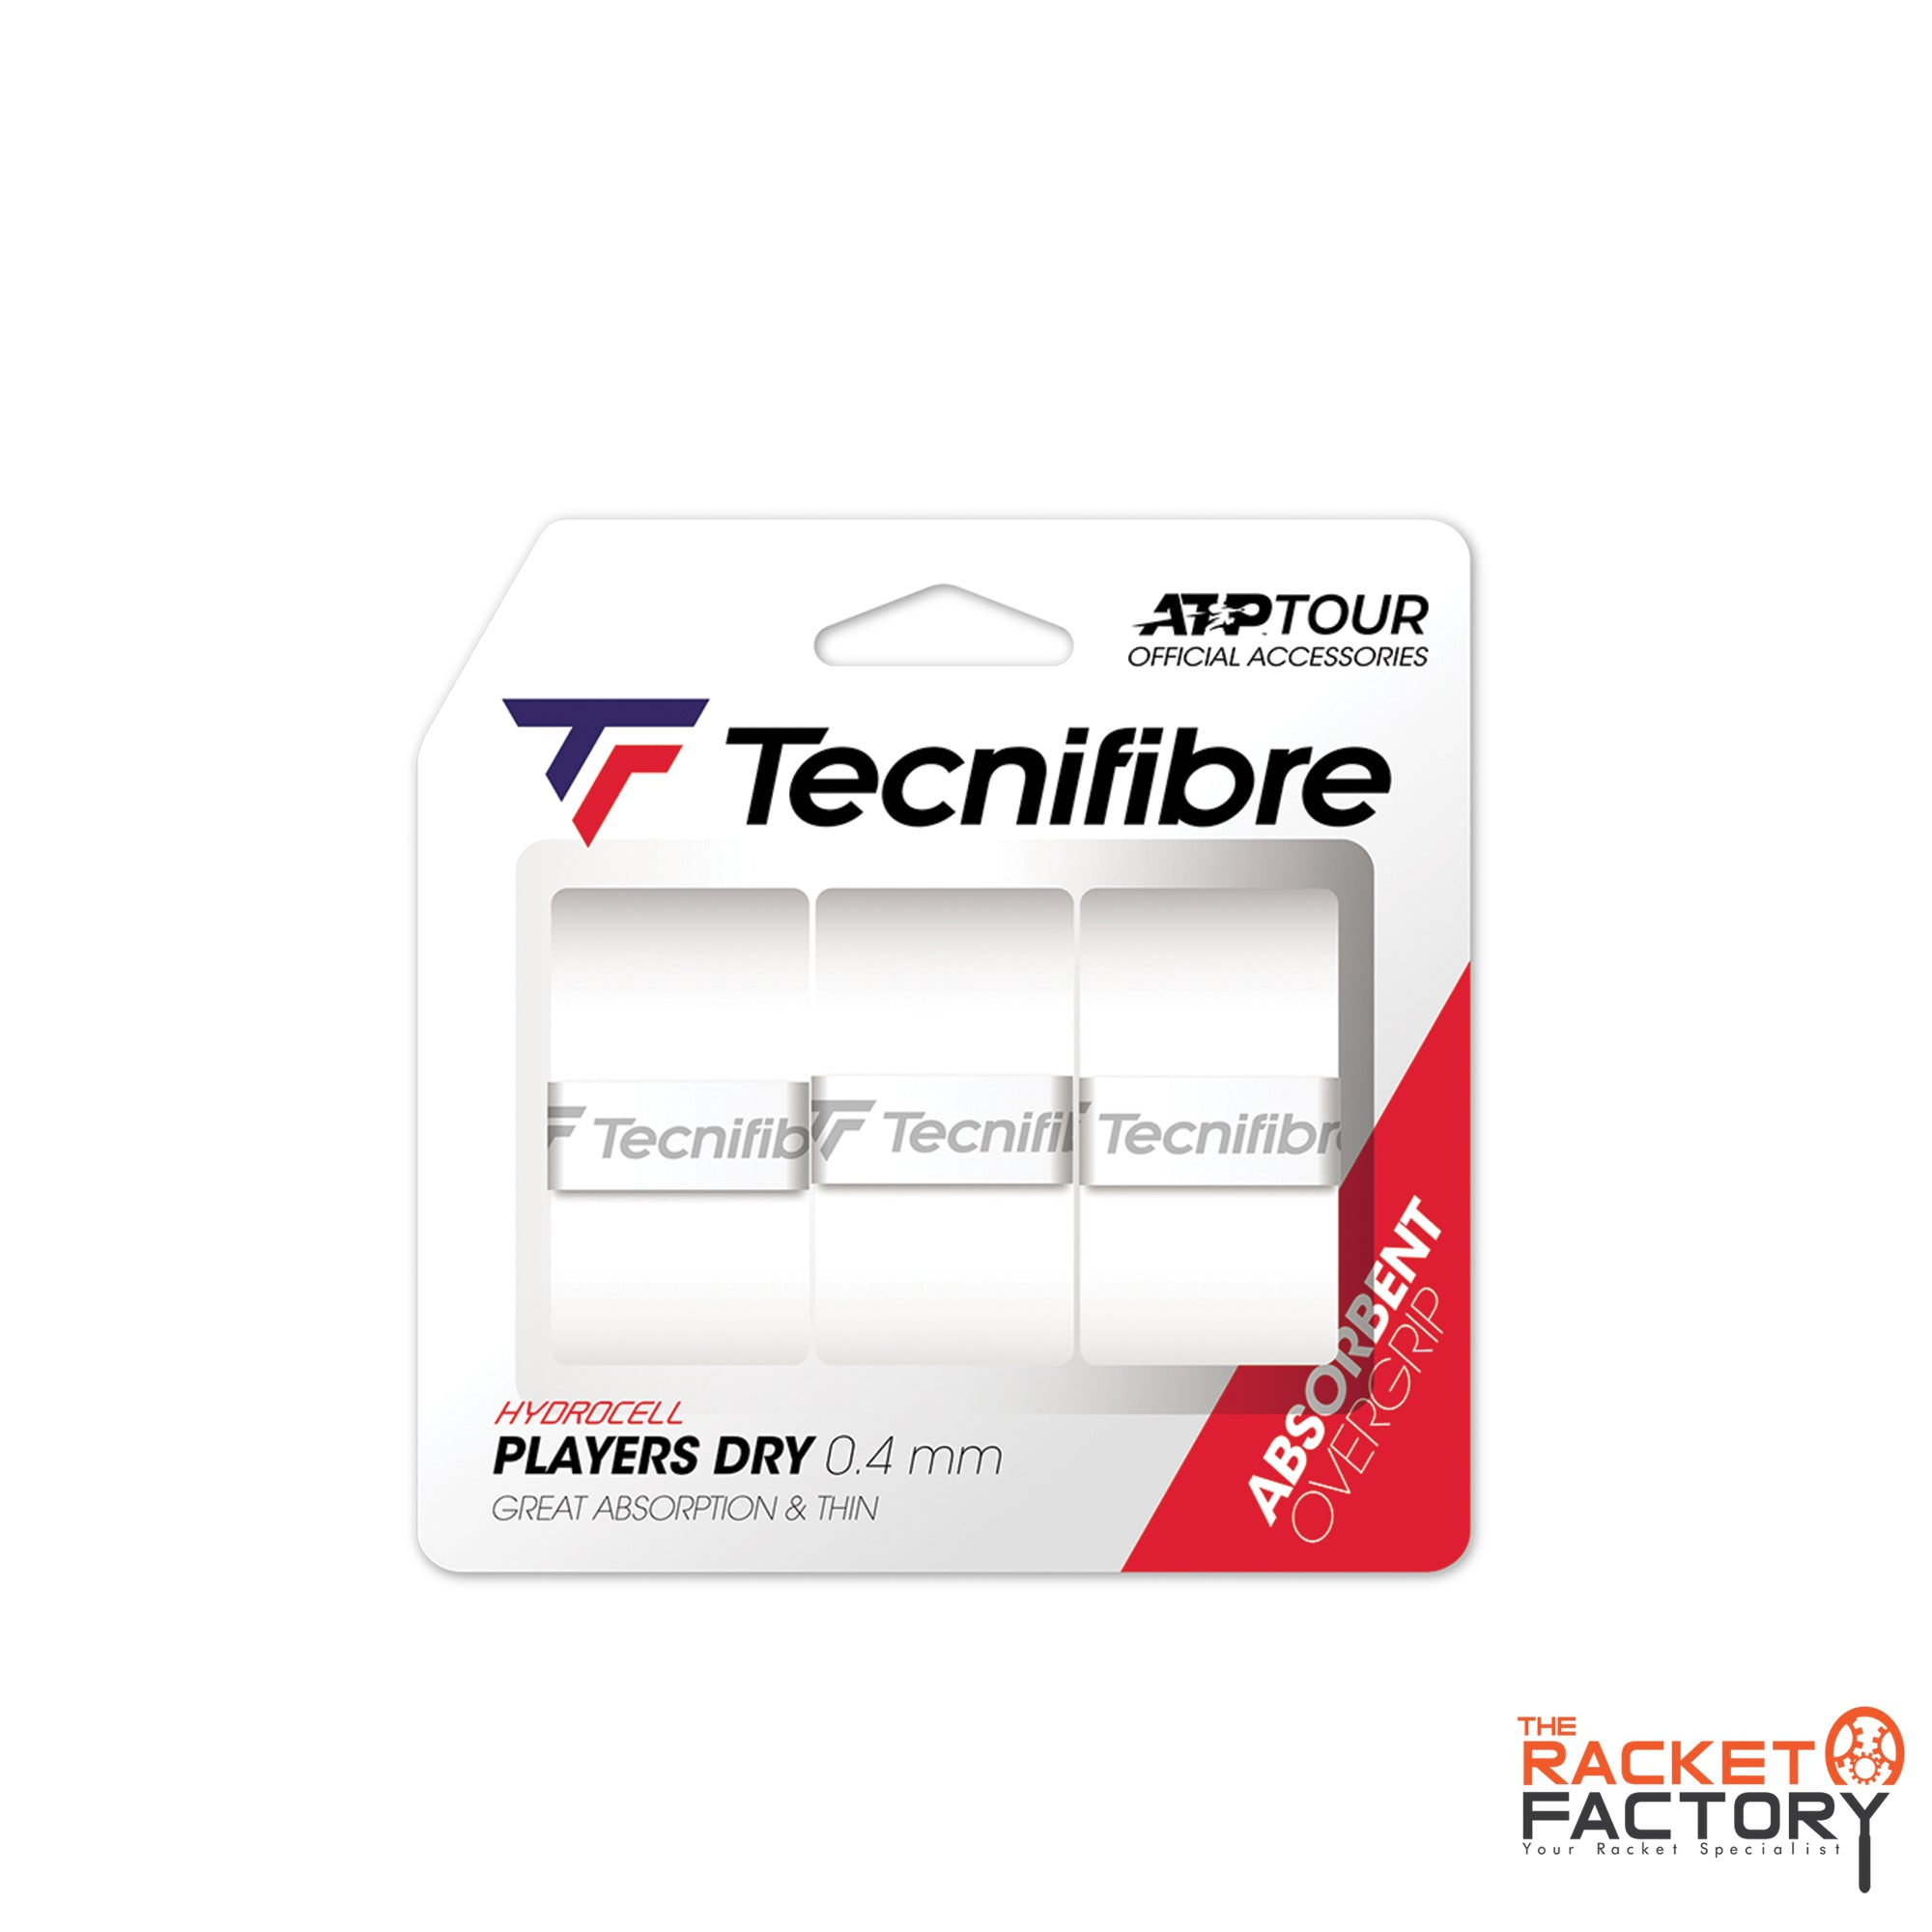 Tecnifibre ATP Players Dry Over Grip - Pack of 3